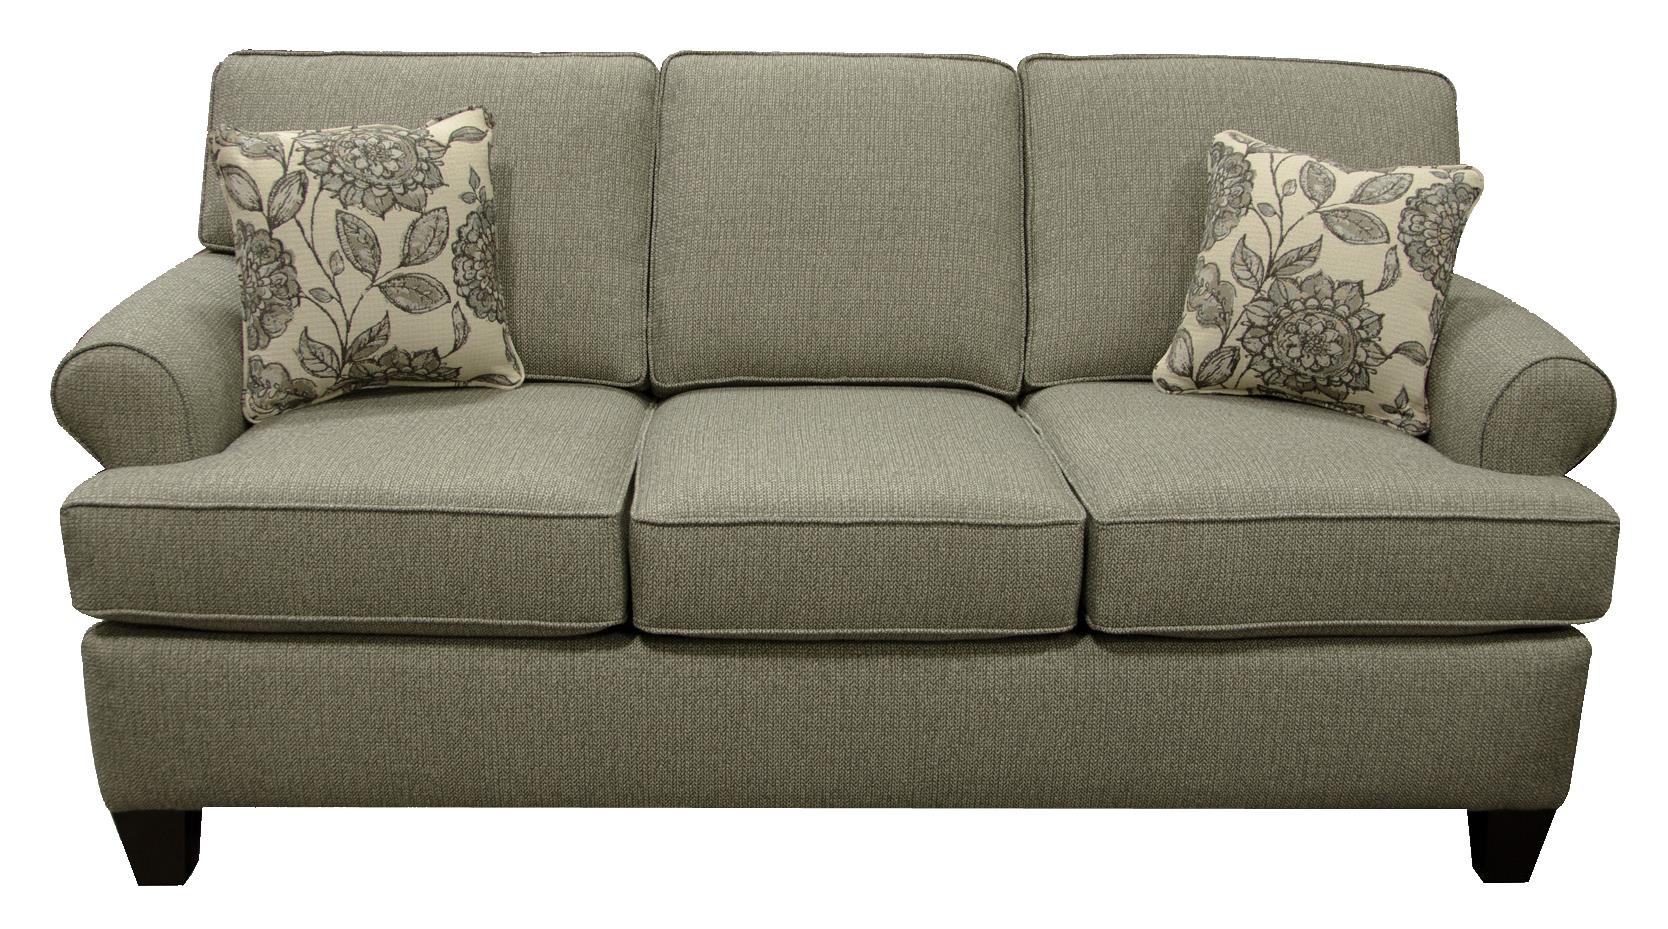 Weaver Sofa by England at EFO Furniture Outlet